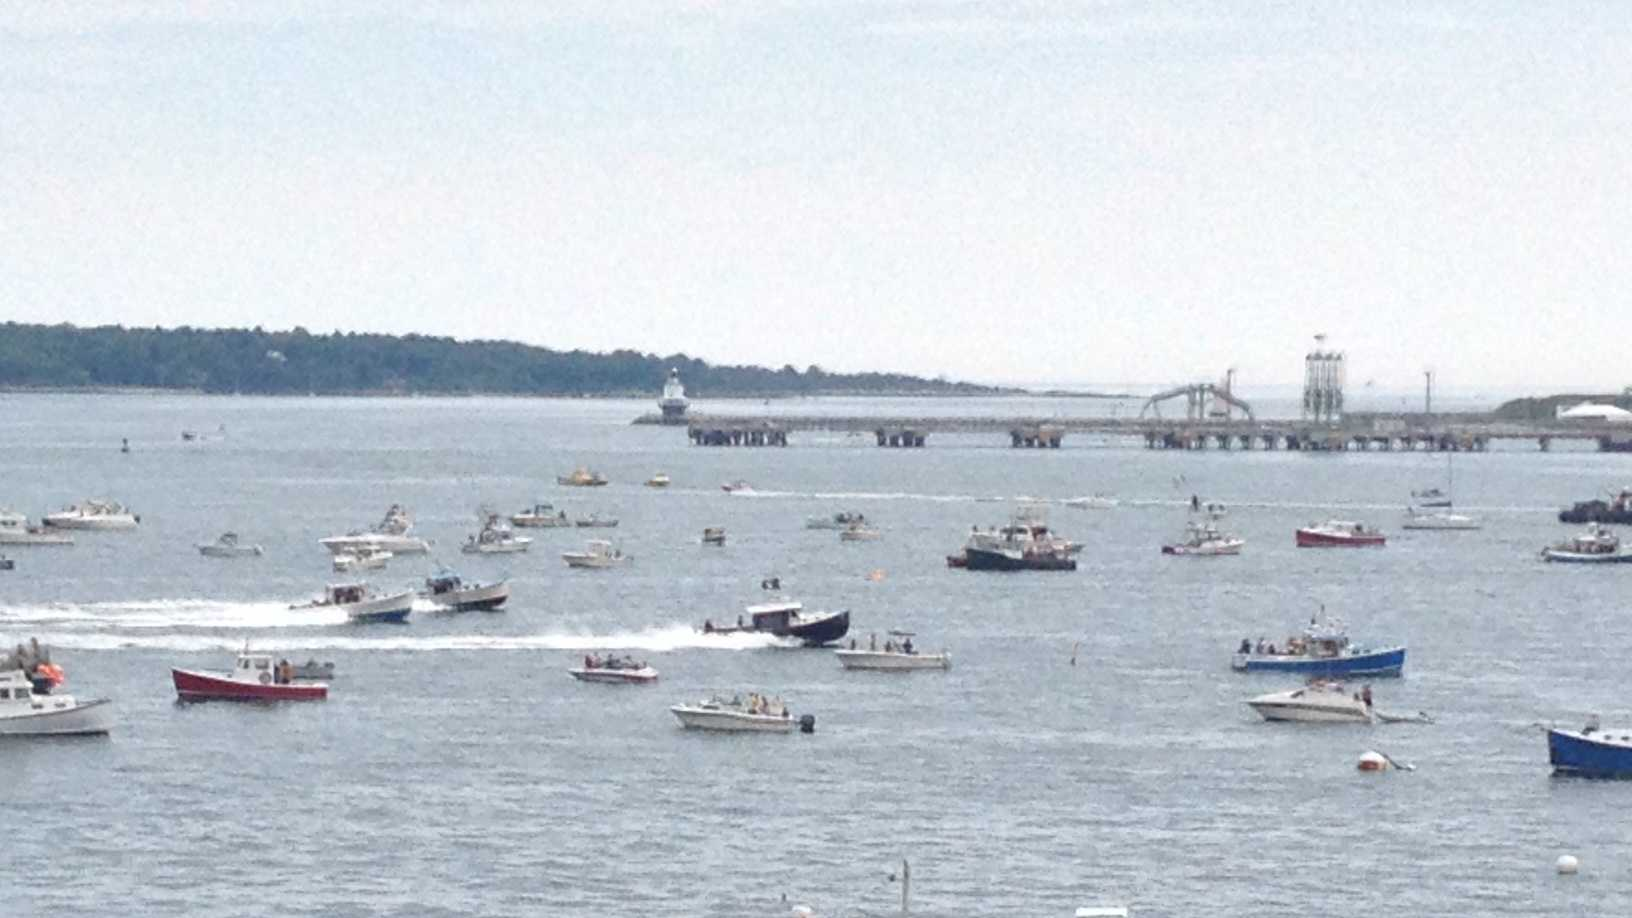 Lobster & Tug Boat Races